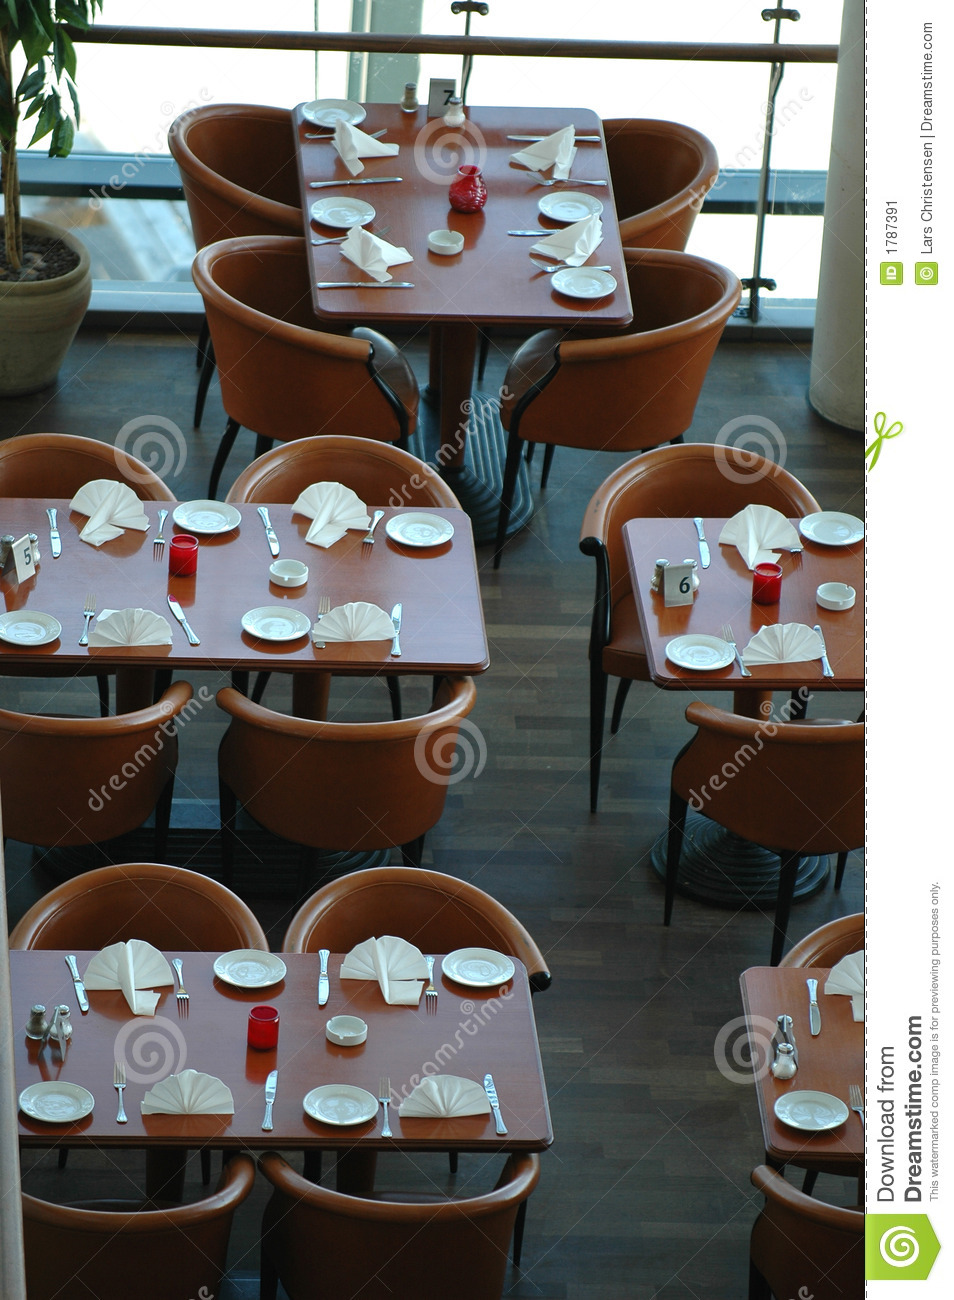 Tables in a resturant